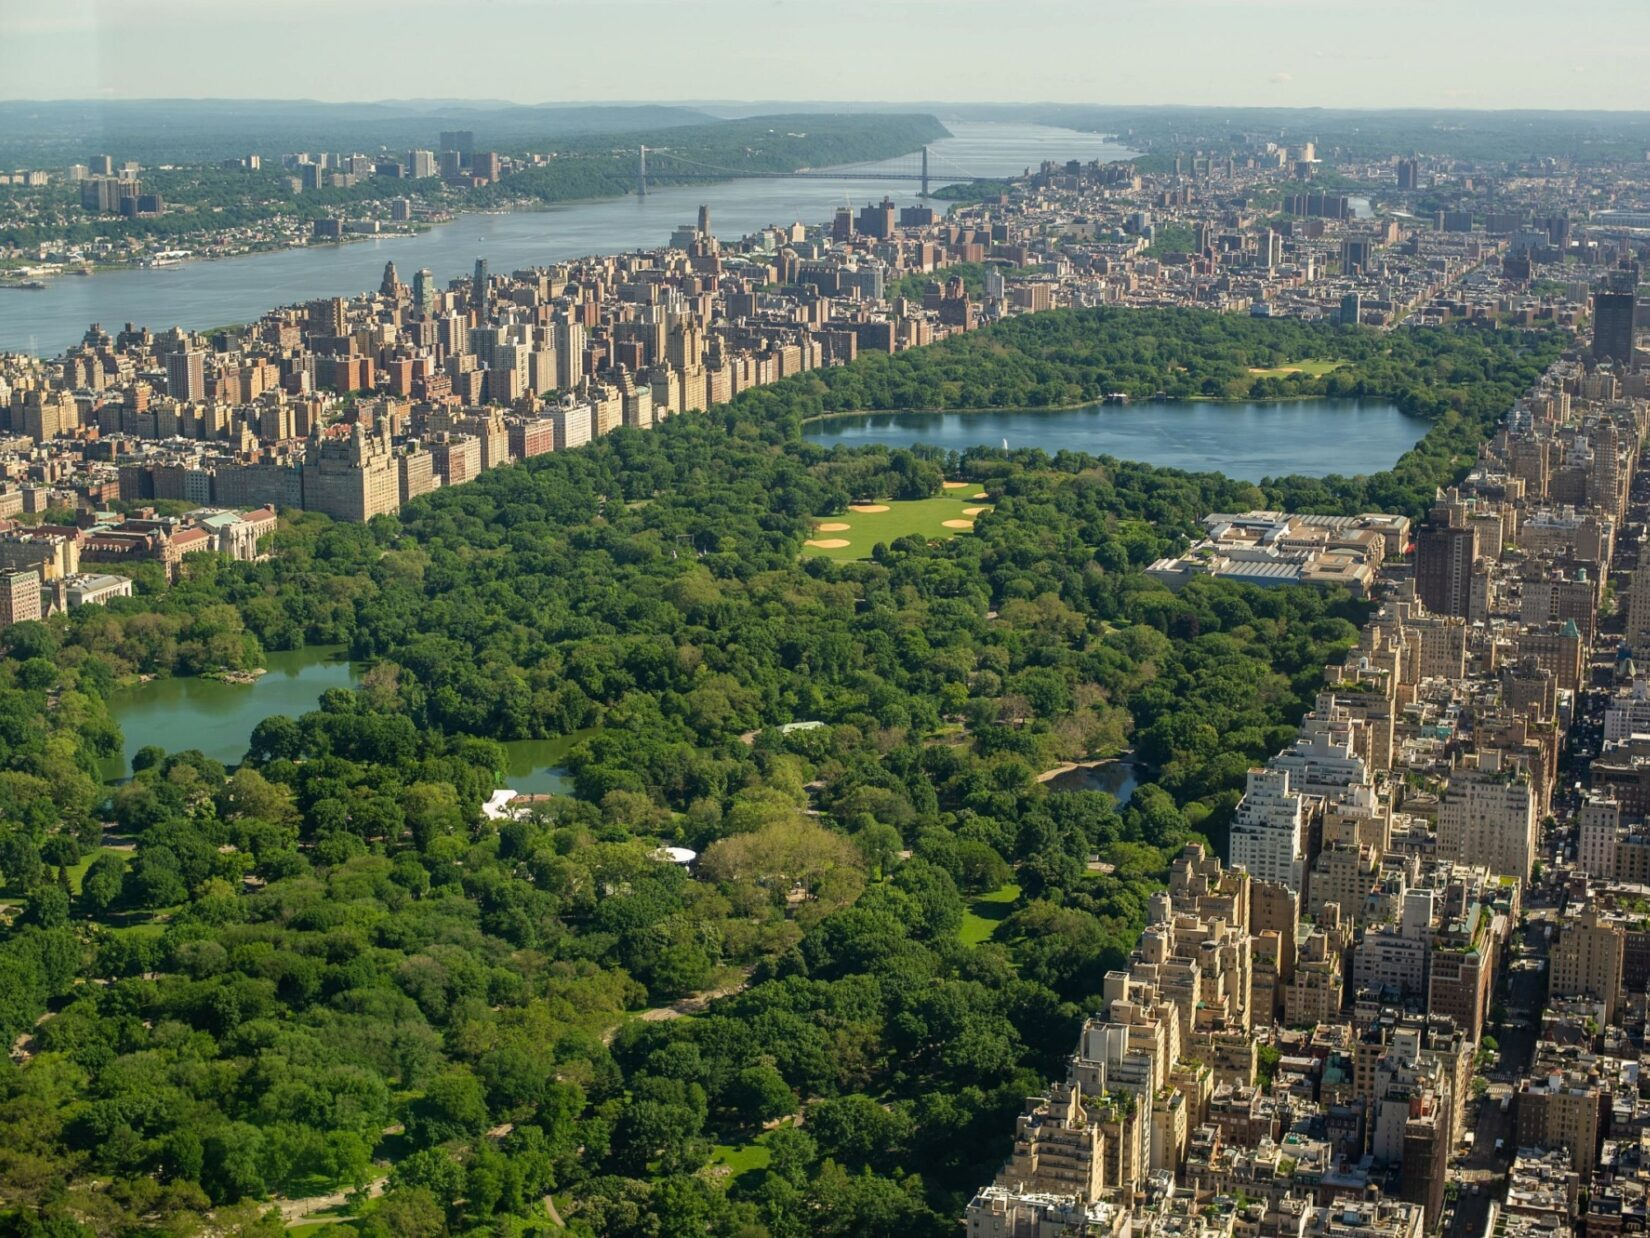 An aerial view of the park looking north, with the Hudson review to the west